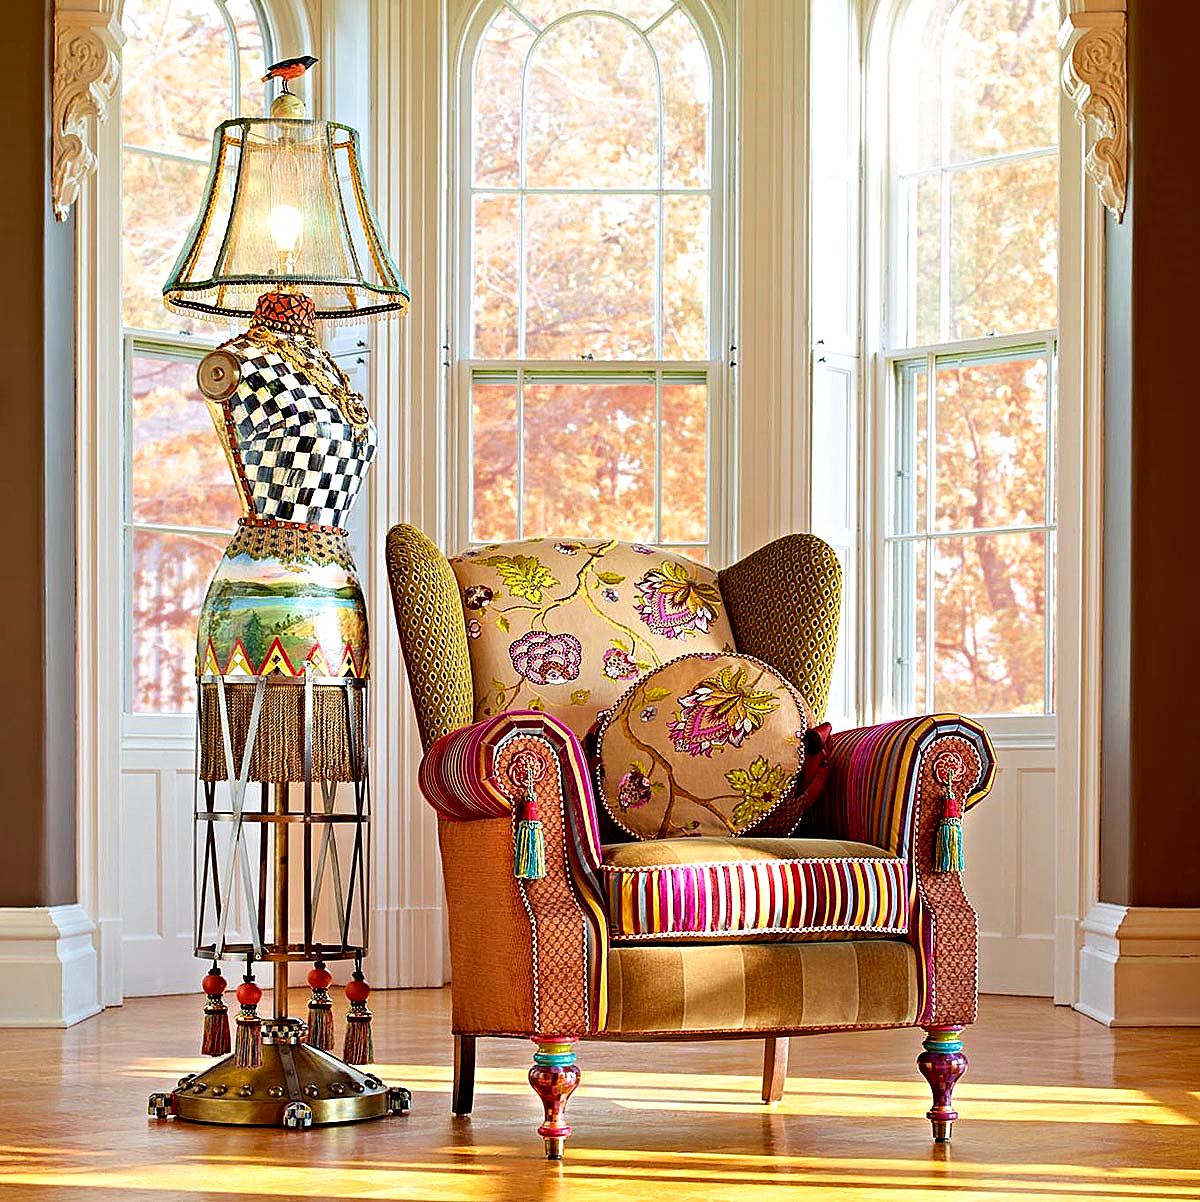 Bittersweet Wing Chair & Dressmaker's Floor Lamp